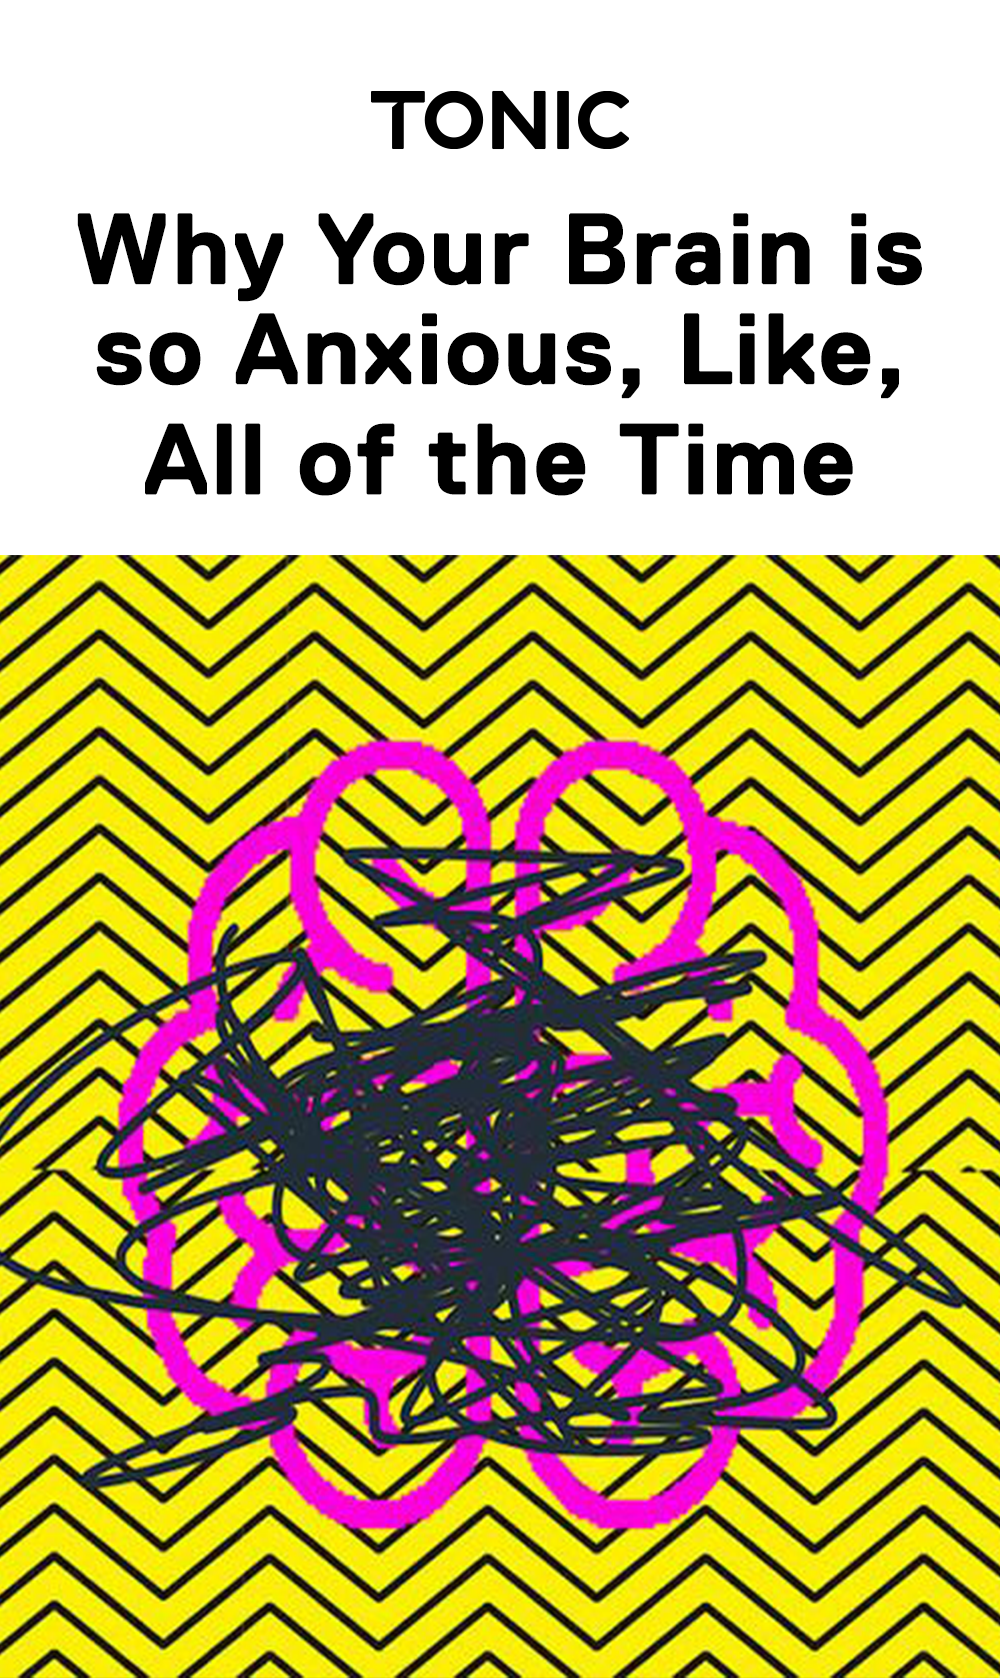 It feels like more and more people are feeling anxious these days. From losing an hour to endless Amazon pages of trendy iPhone cases to waking up every hour to filter the thousands of work emails in your inbox, it seems like our brains are never really quiet. A neuroscientist spoke with VICE to finally answer why and how we got so anxious.